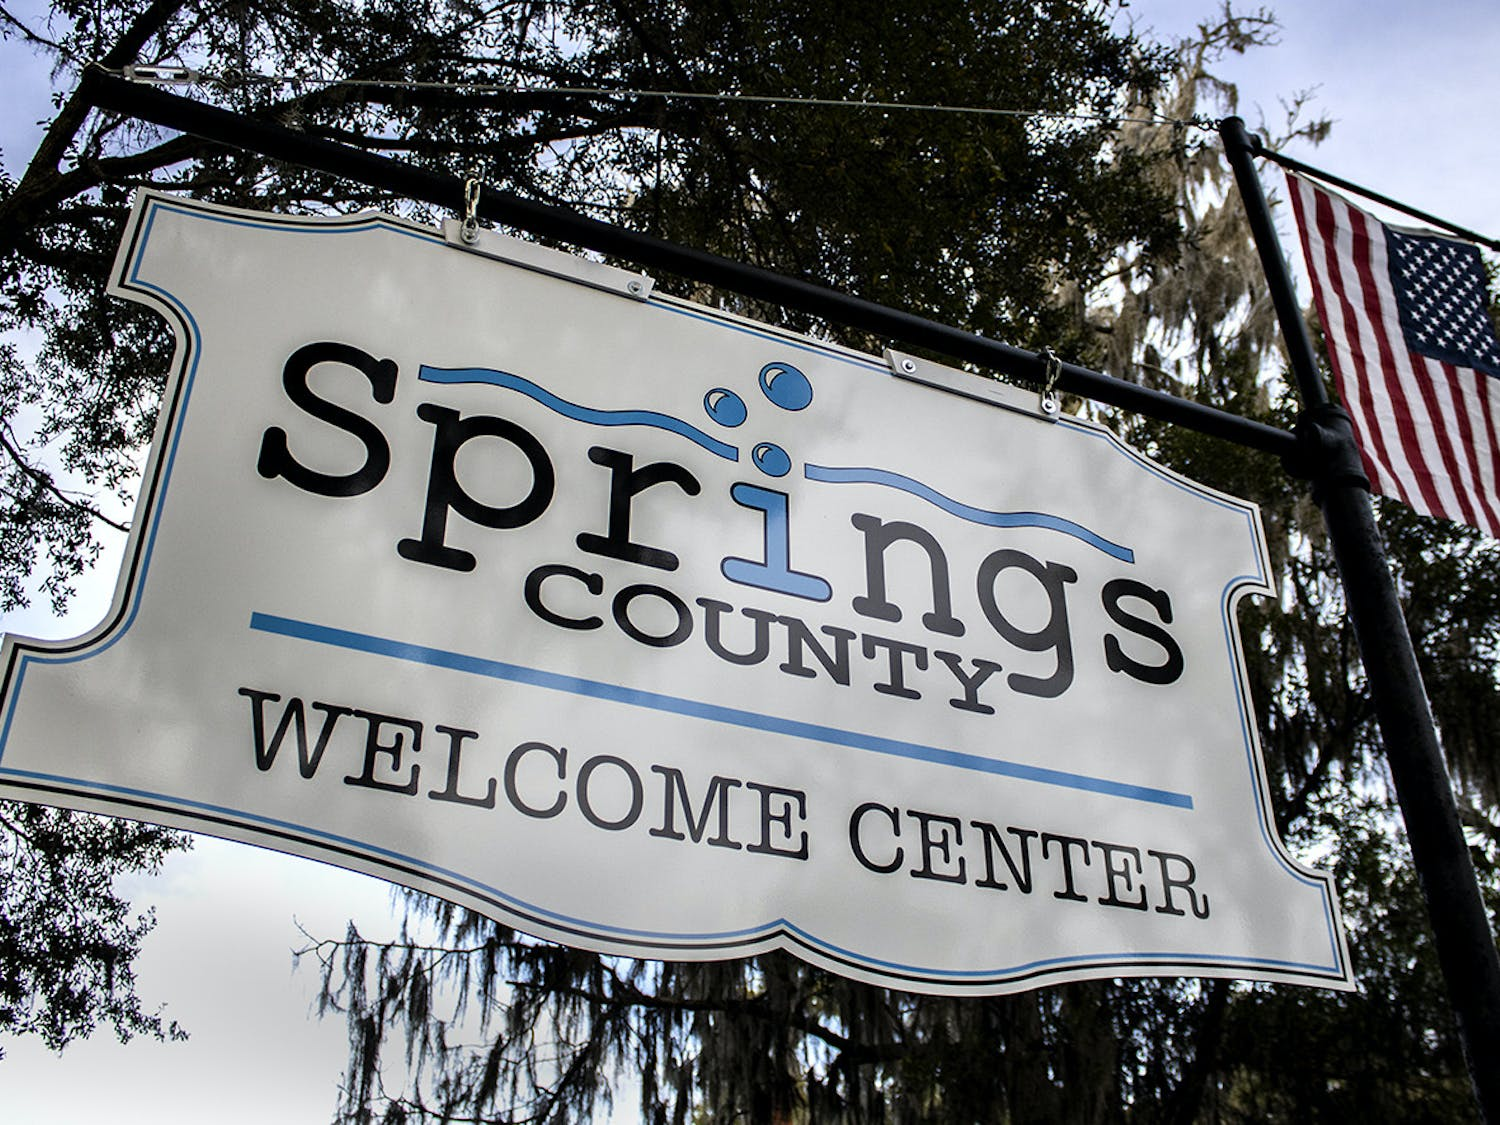 Photo of the the welcome center sign for proposed Springs County. The county would incorporate Newberry, High Springs, Alachua, Archer and Lacrosse in its territory.